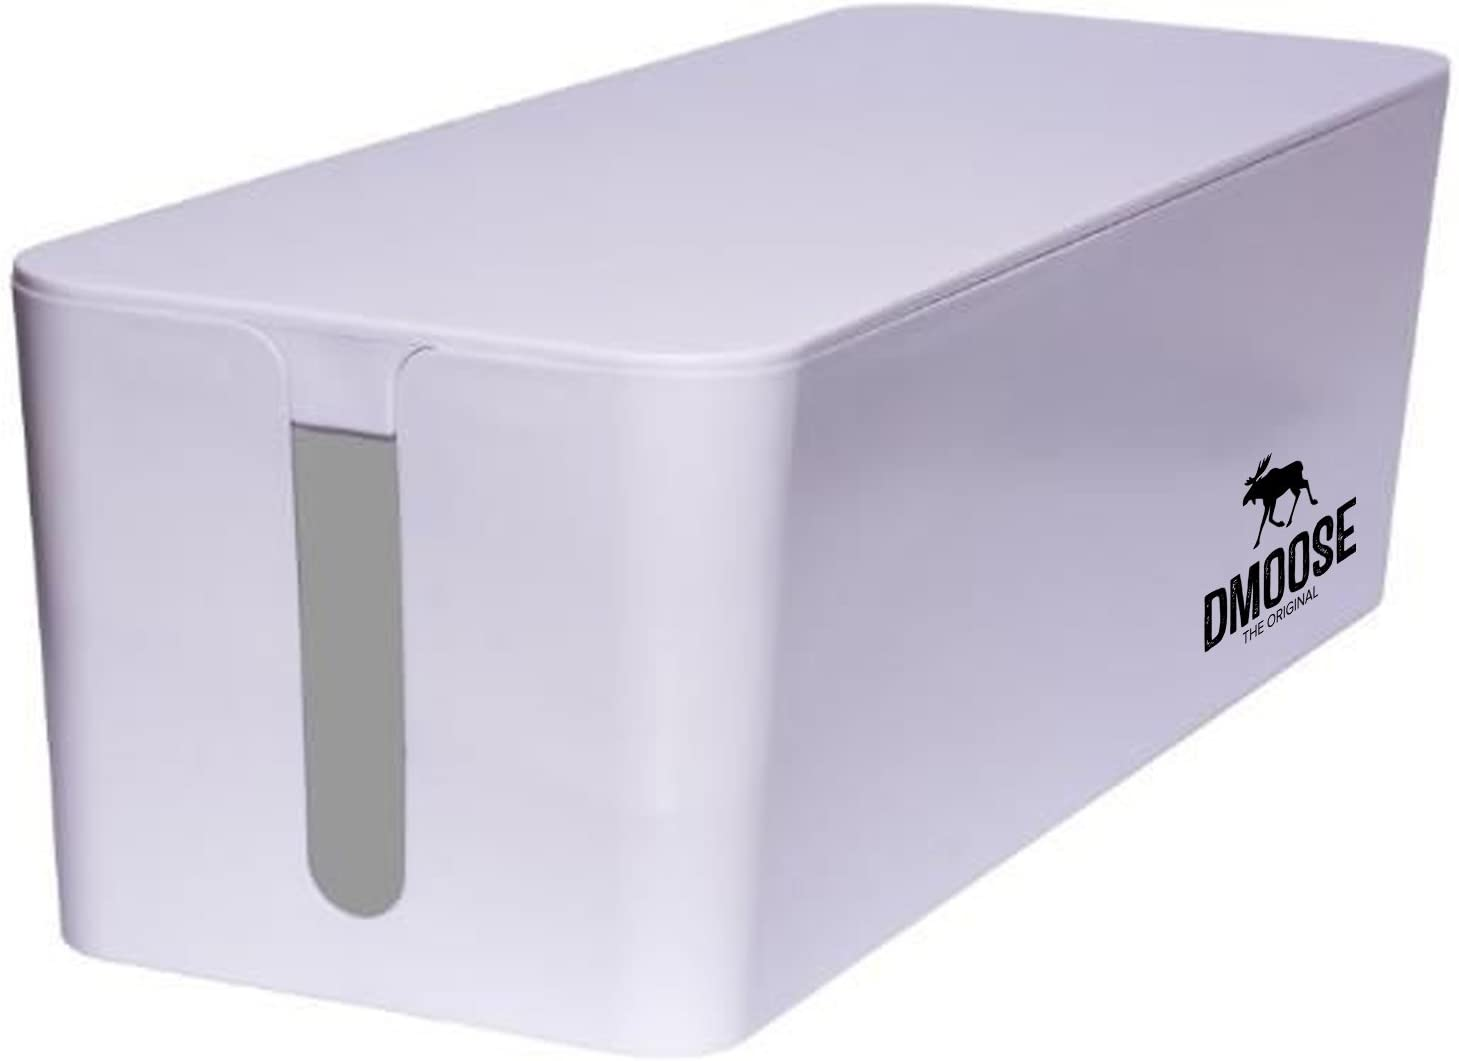 DMoose Cable Management Box Organizer for Cords, Power Strips or Surge Protectors, Hide Loose Wires Behind TVs, Home Office Computers, Office Desks, Entertainment Centers (White)